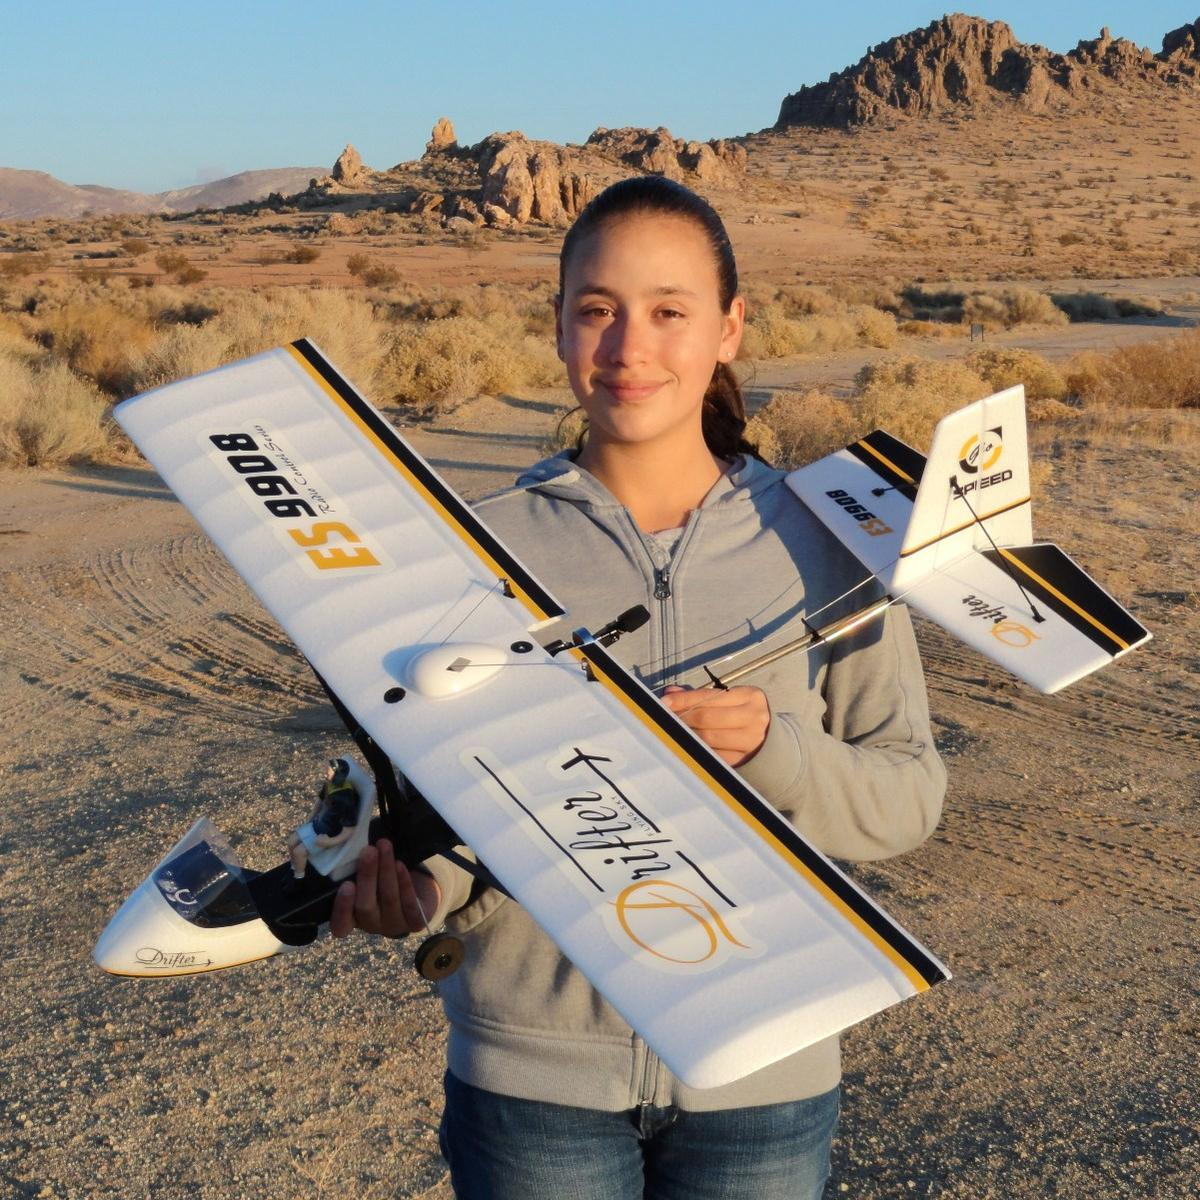 RC Pilot Evelyn holding the New Hobby King Drifter Ultralight